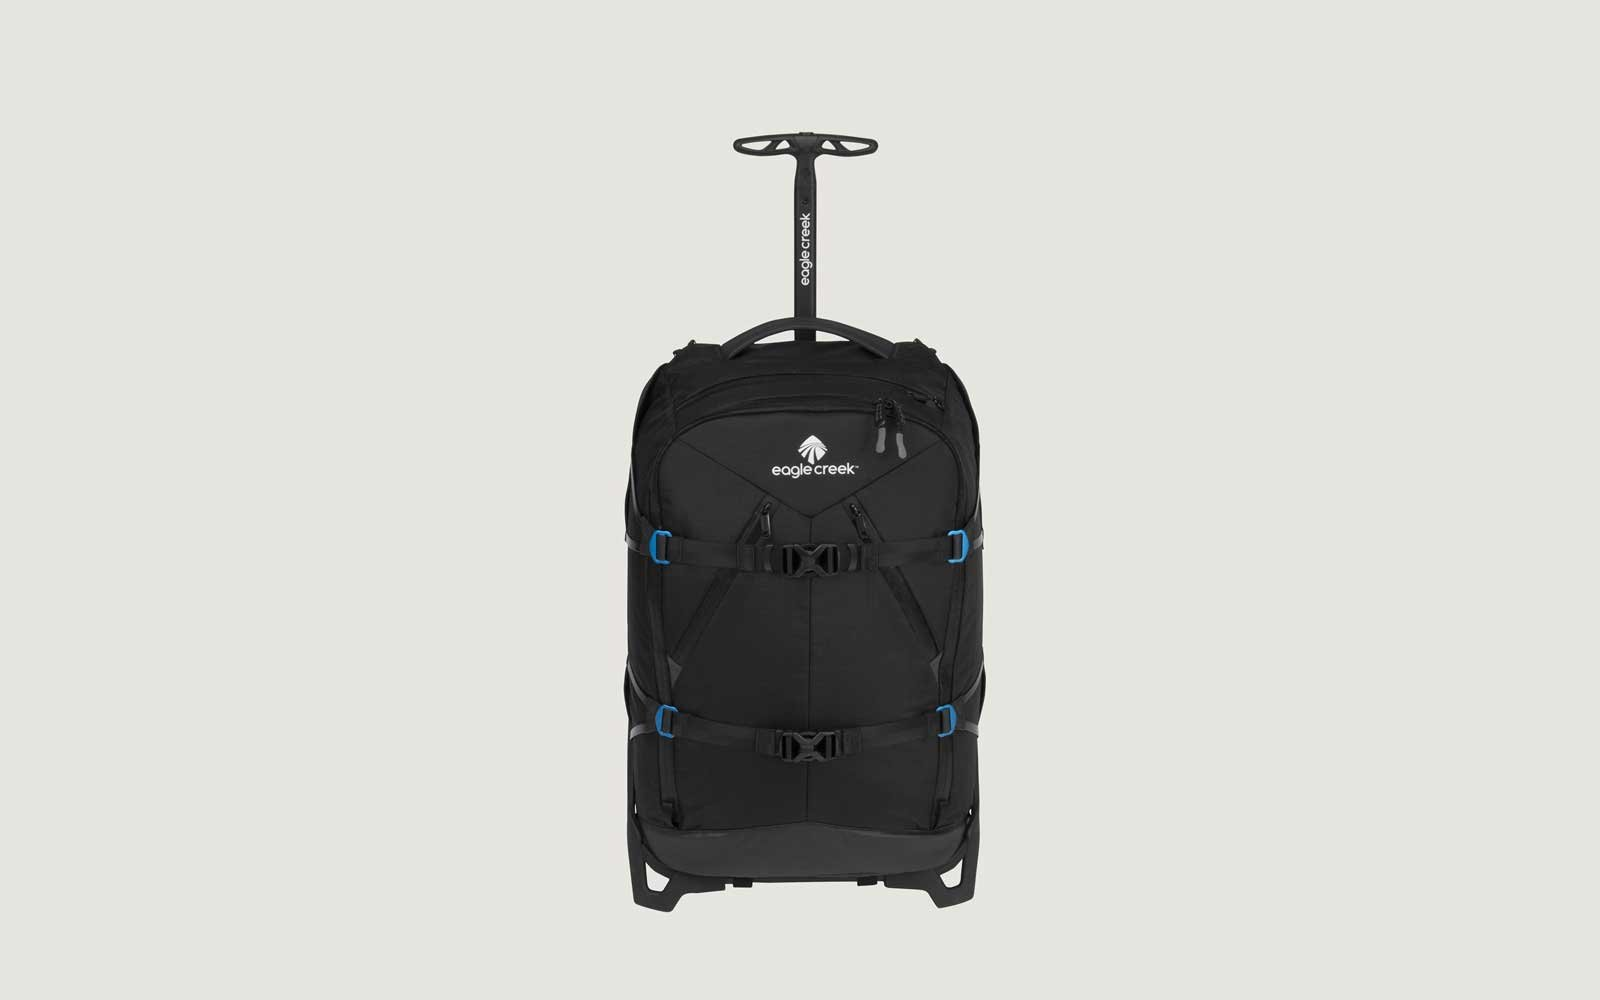 Eagle Creek EC Lync™ System Carry-On